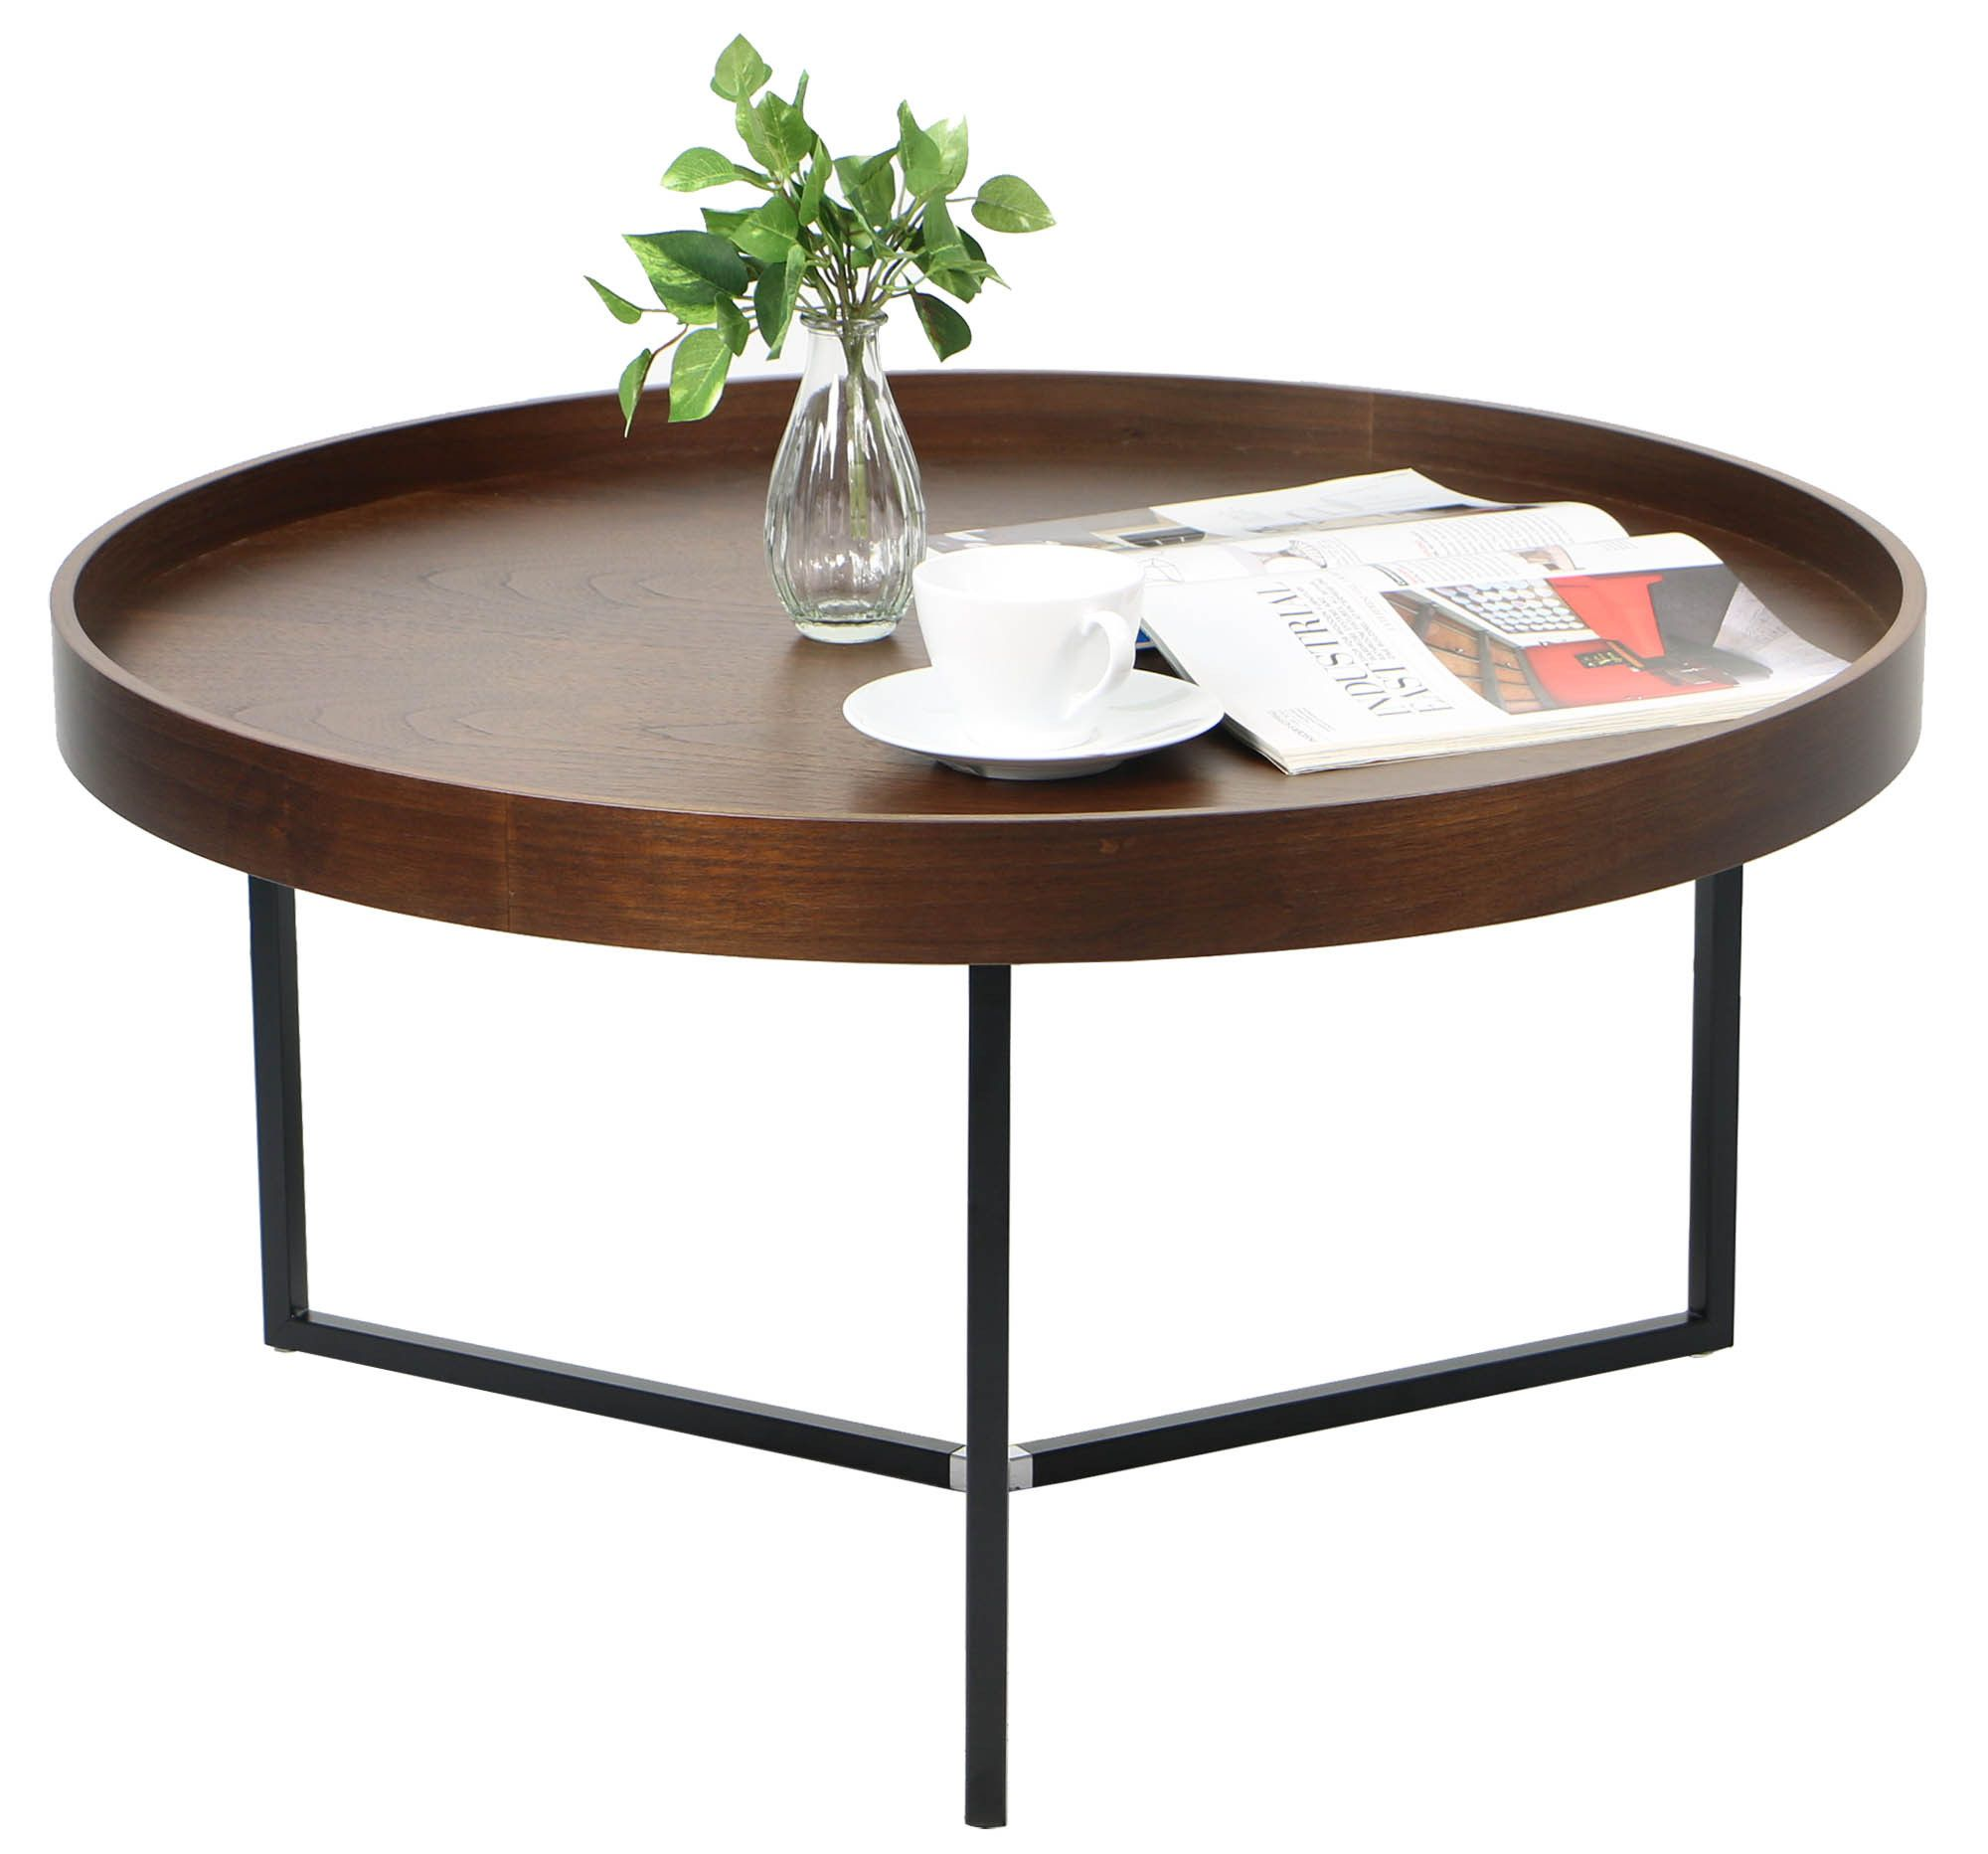 Living Room Furniture Walnut Wood barrie walnut round tray table - coffee tables - living room